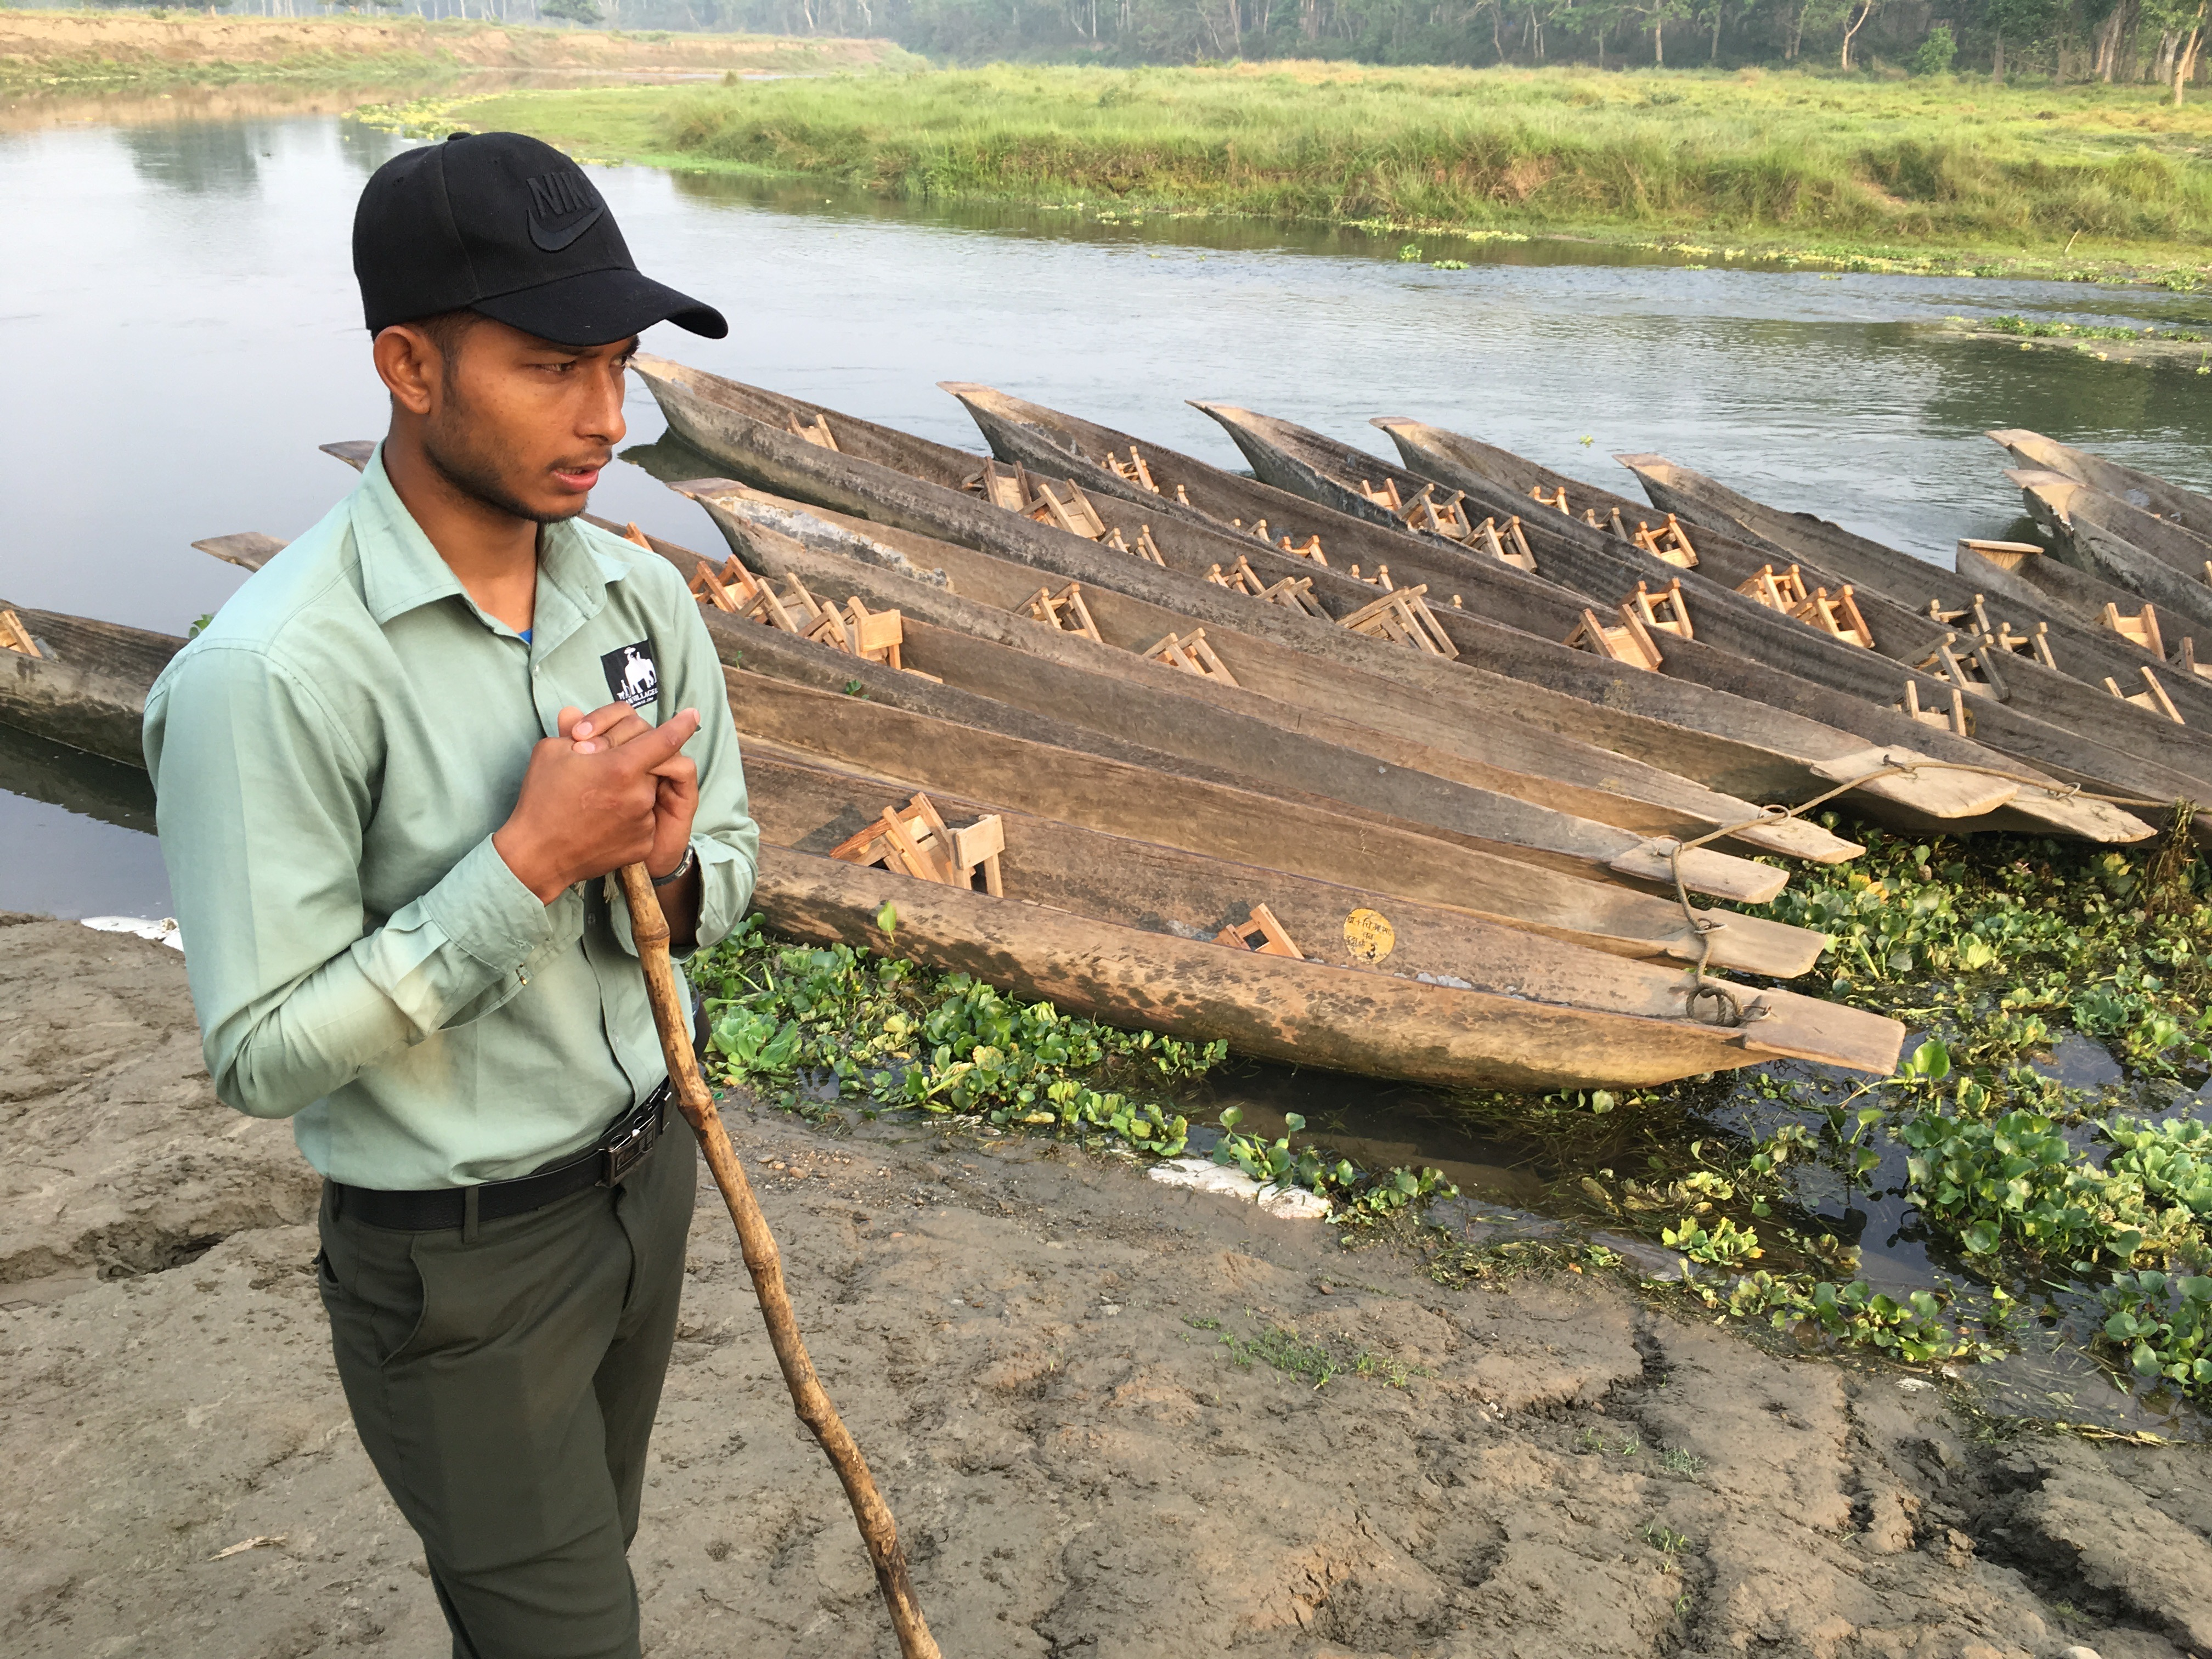 Our excellent guide, Suman, with doongas, on the Rapti River